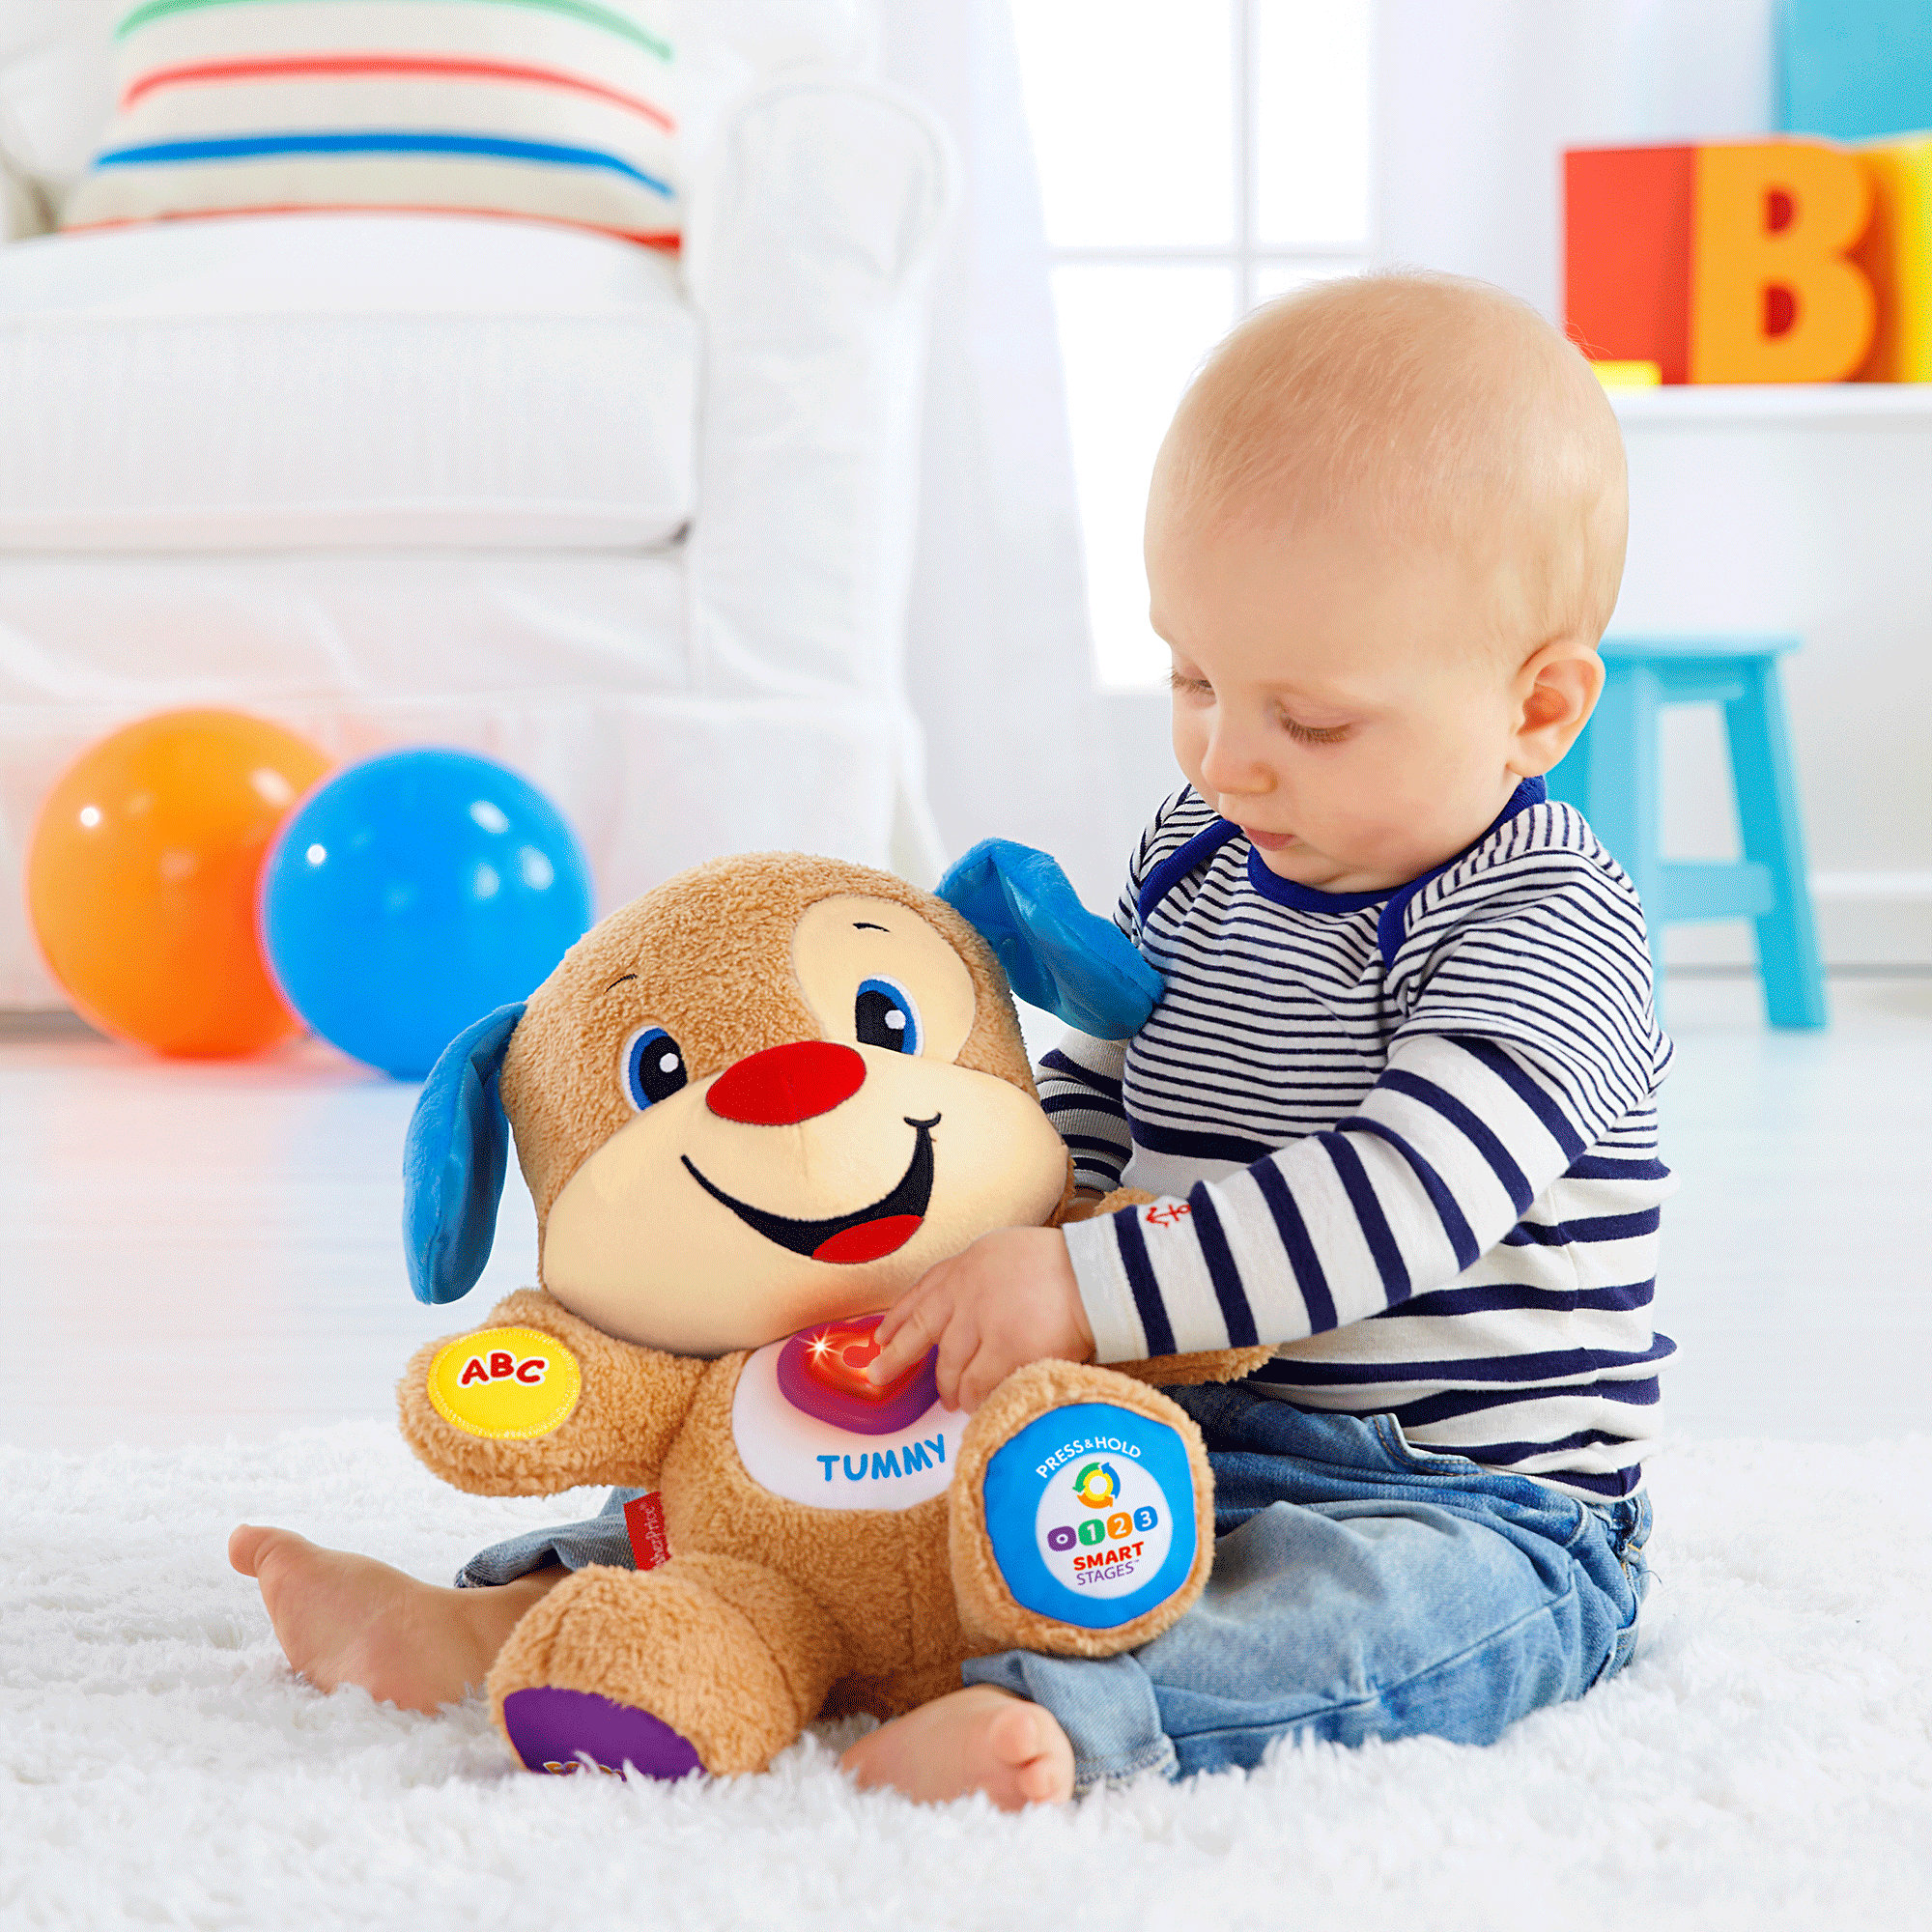 Fisher Price Laugh & Learn Smart Stages Puppy Walmart